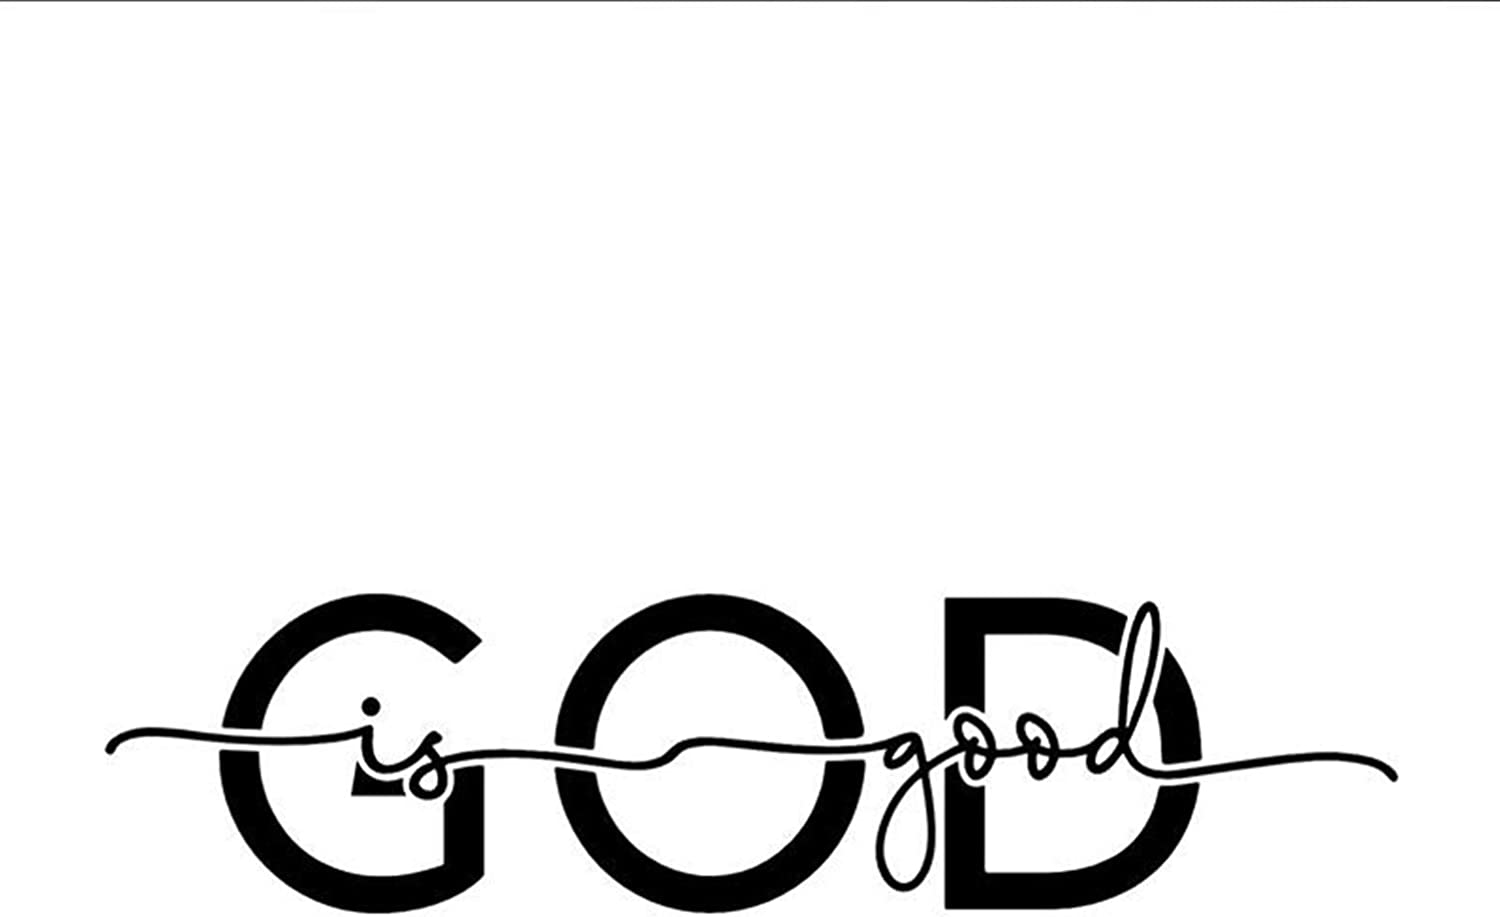 God is Good Religious Christian White Vinyl Window Decal Sticker for Cars or Laptops, 5 1/2 Inch